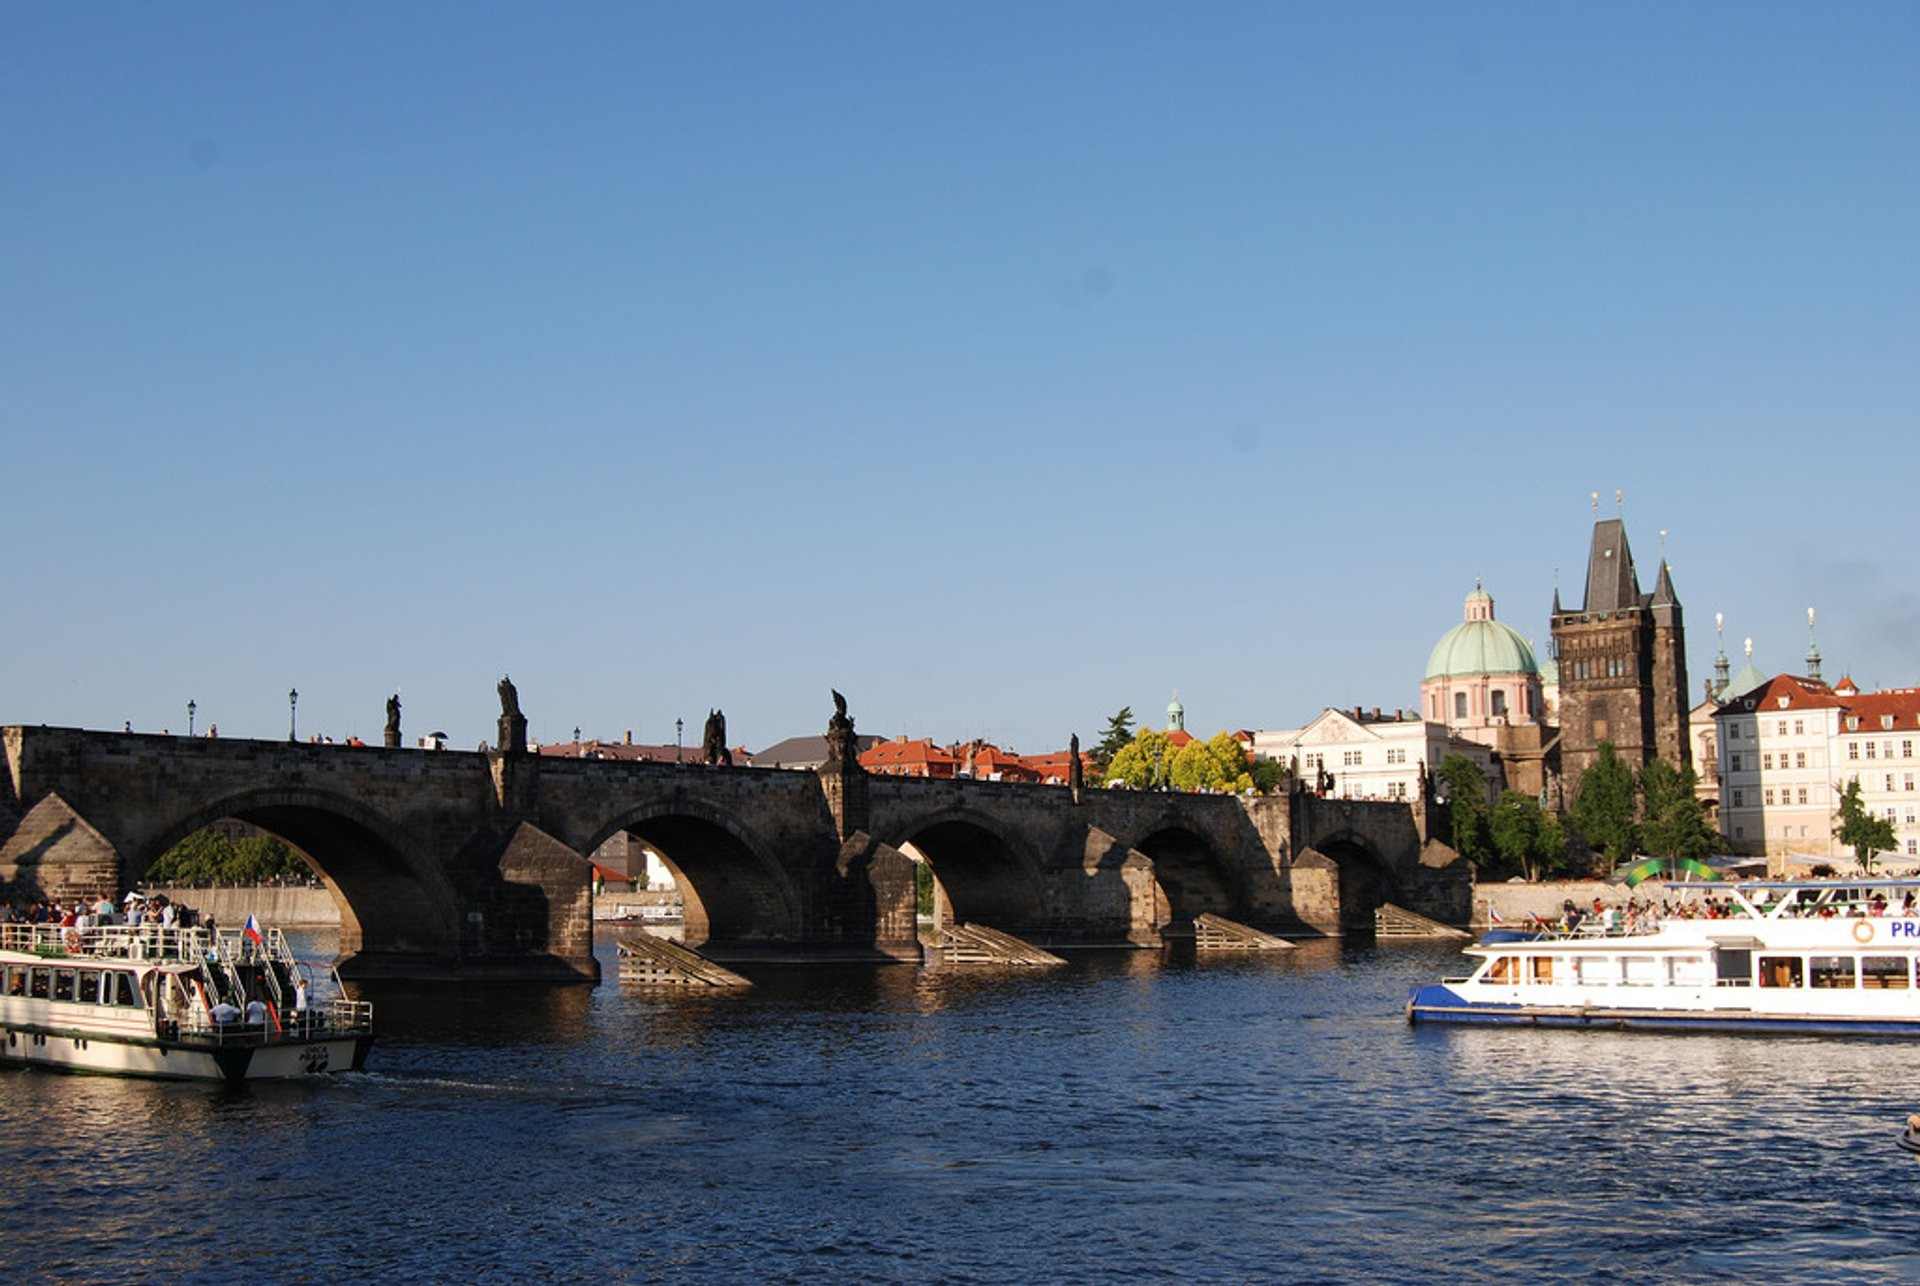 Summertime River Cruise in Prague - Best Season